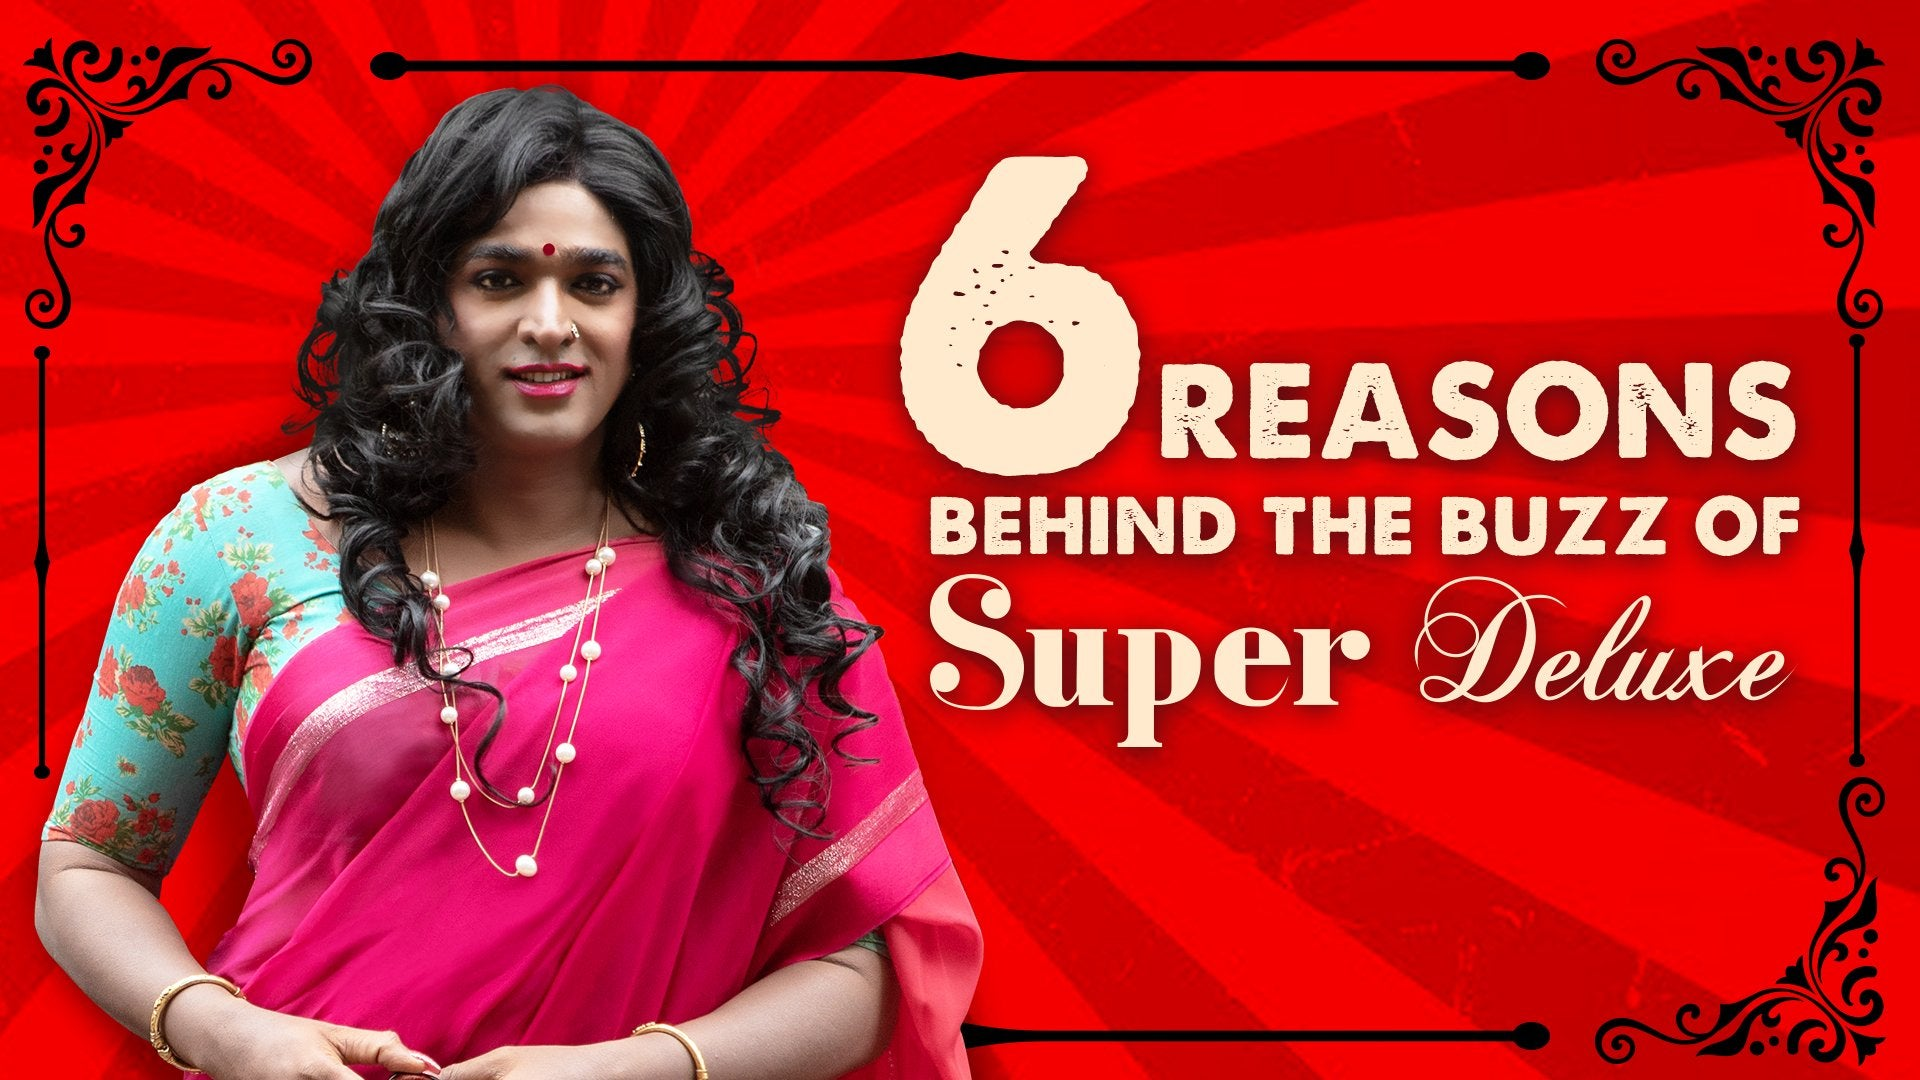 6 REASONS BEHIND THE BUZZ OF SUPER DELUXE